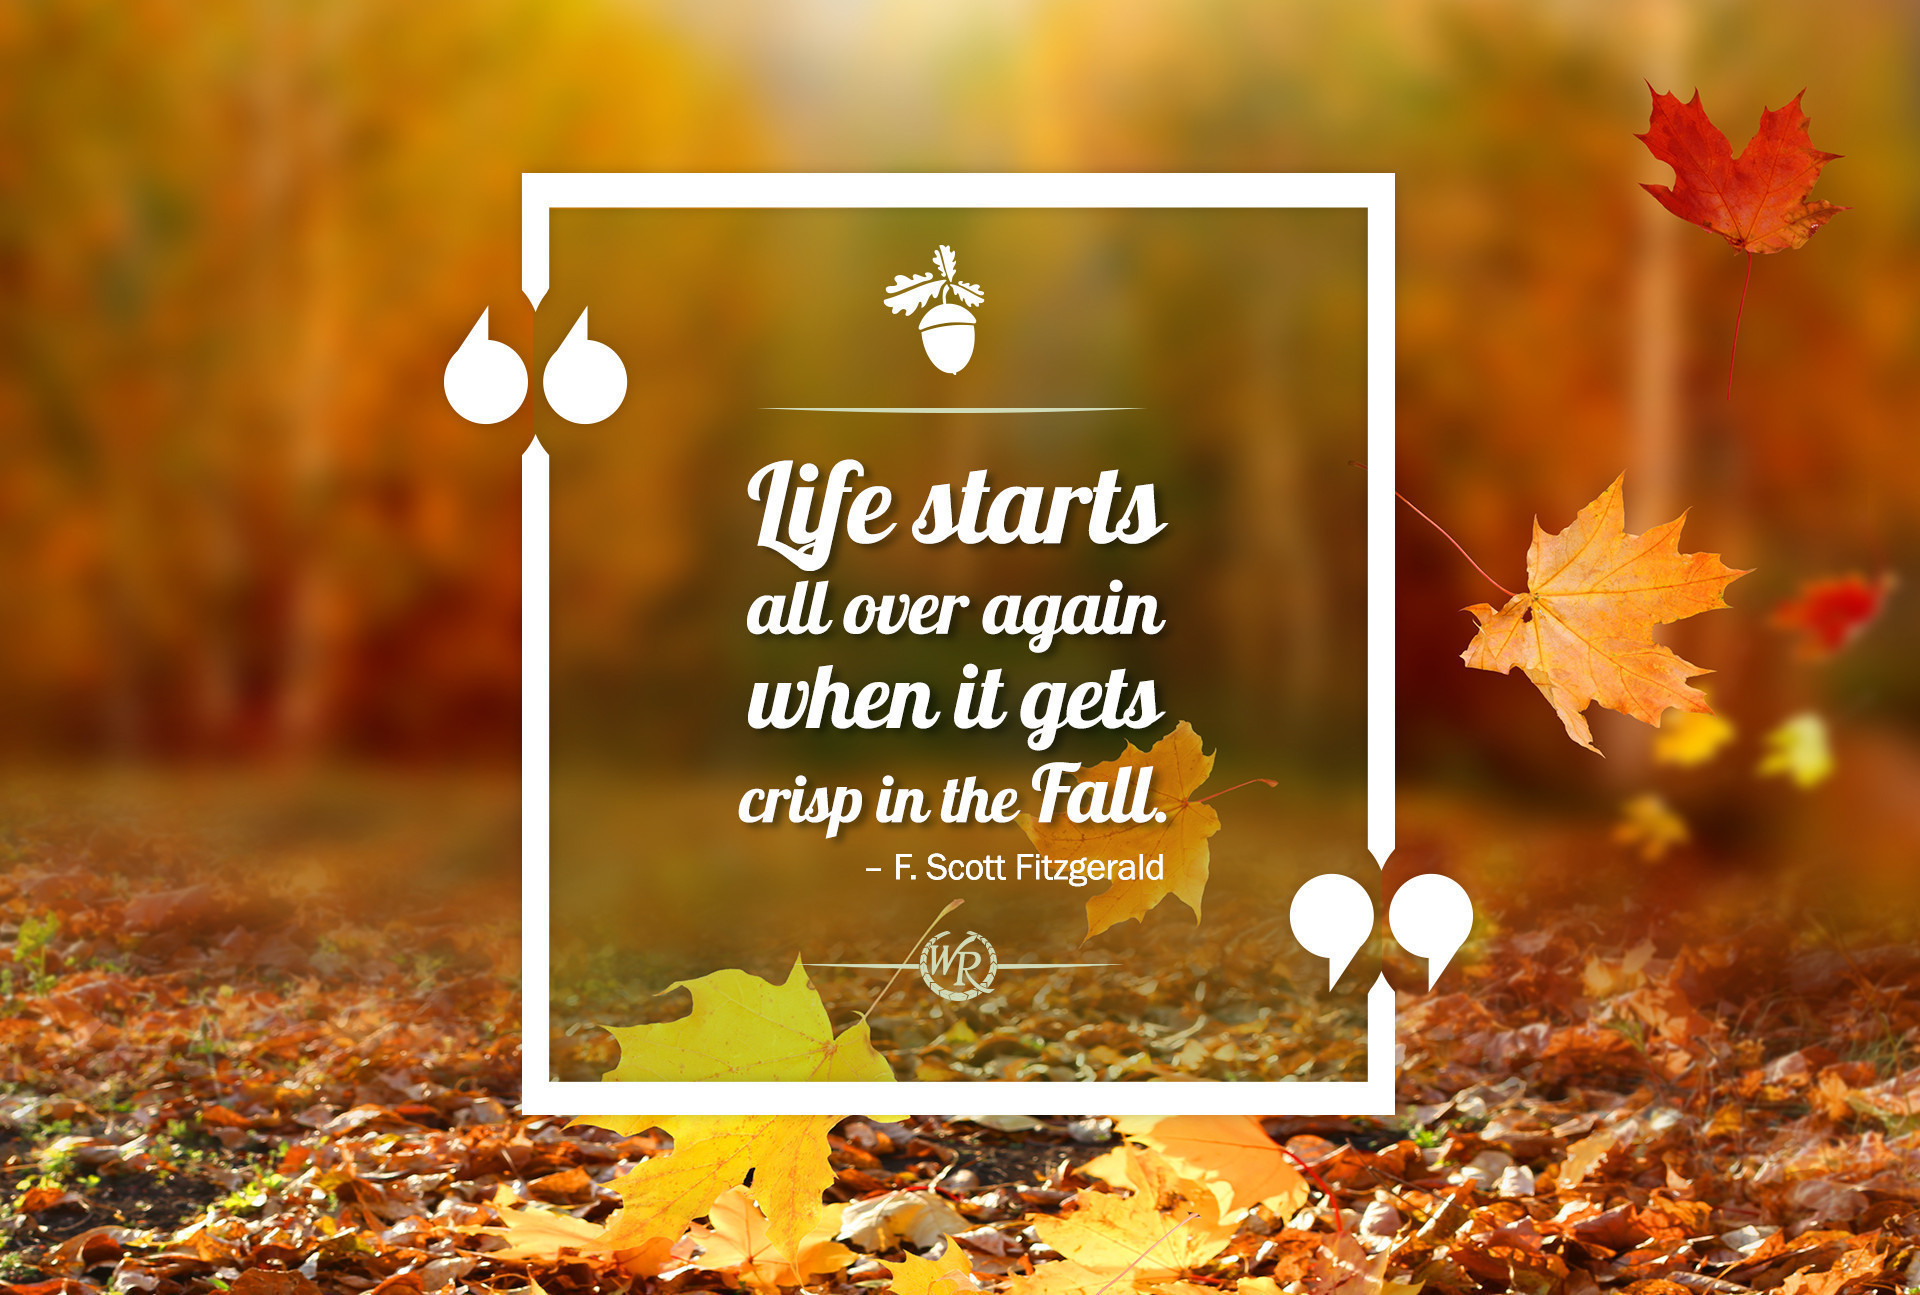 Life Starts All Over Again When It Gets Crisp In The Fall. – F. Scott Fitzgerald | Inspirational Travel Quotes